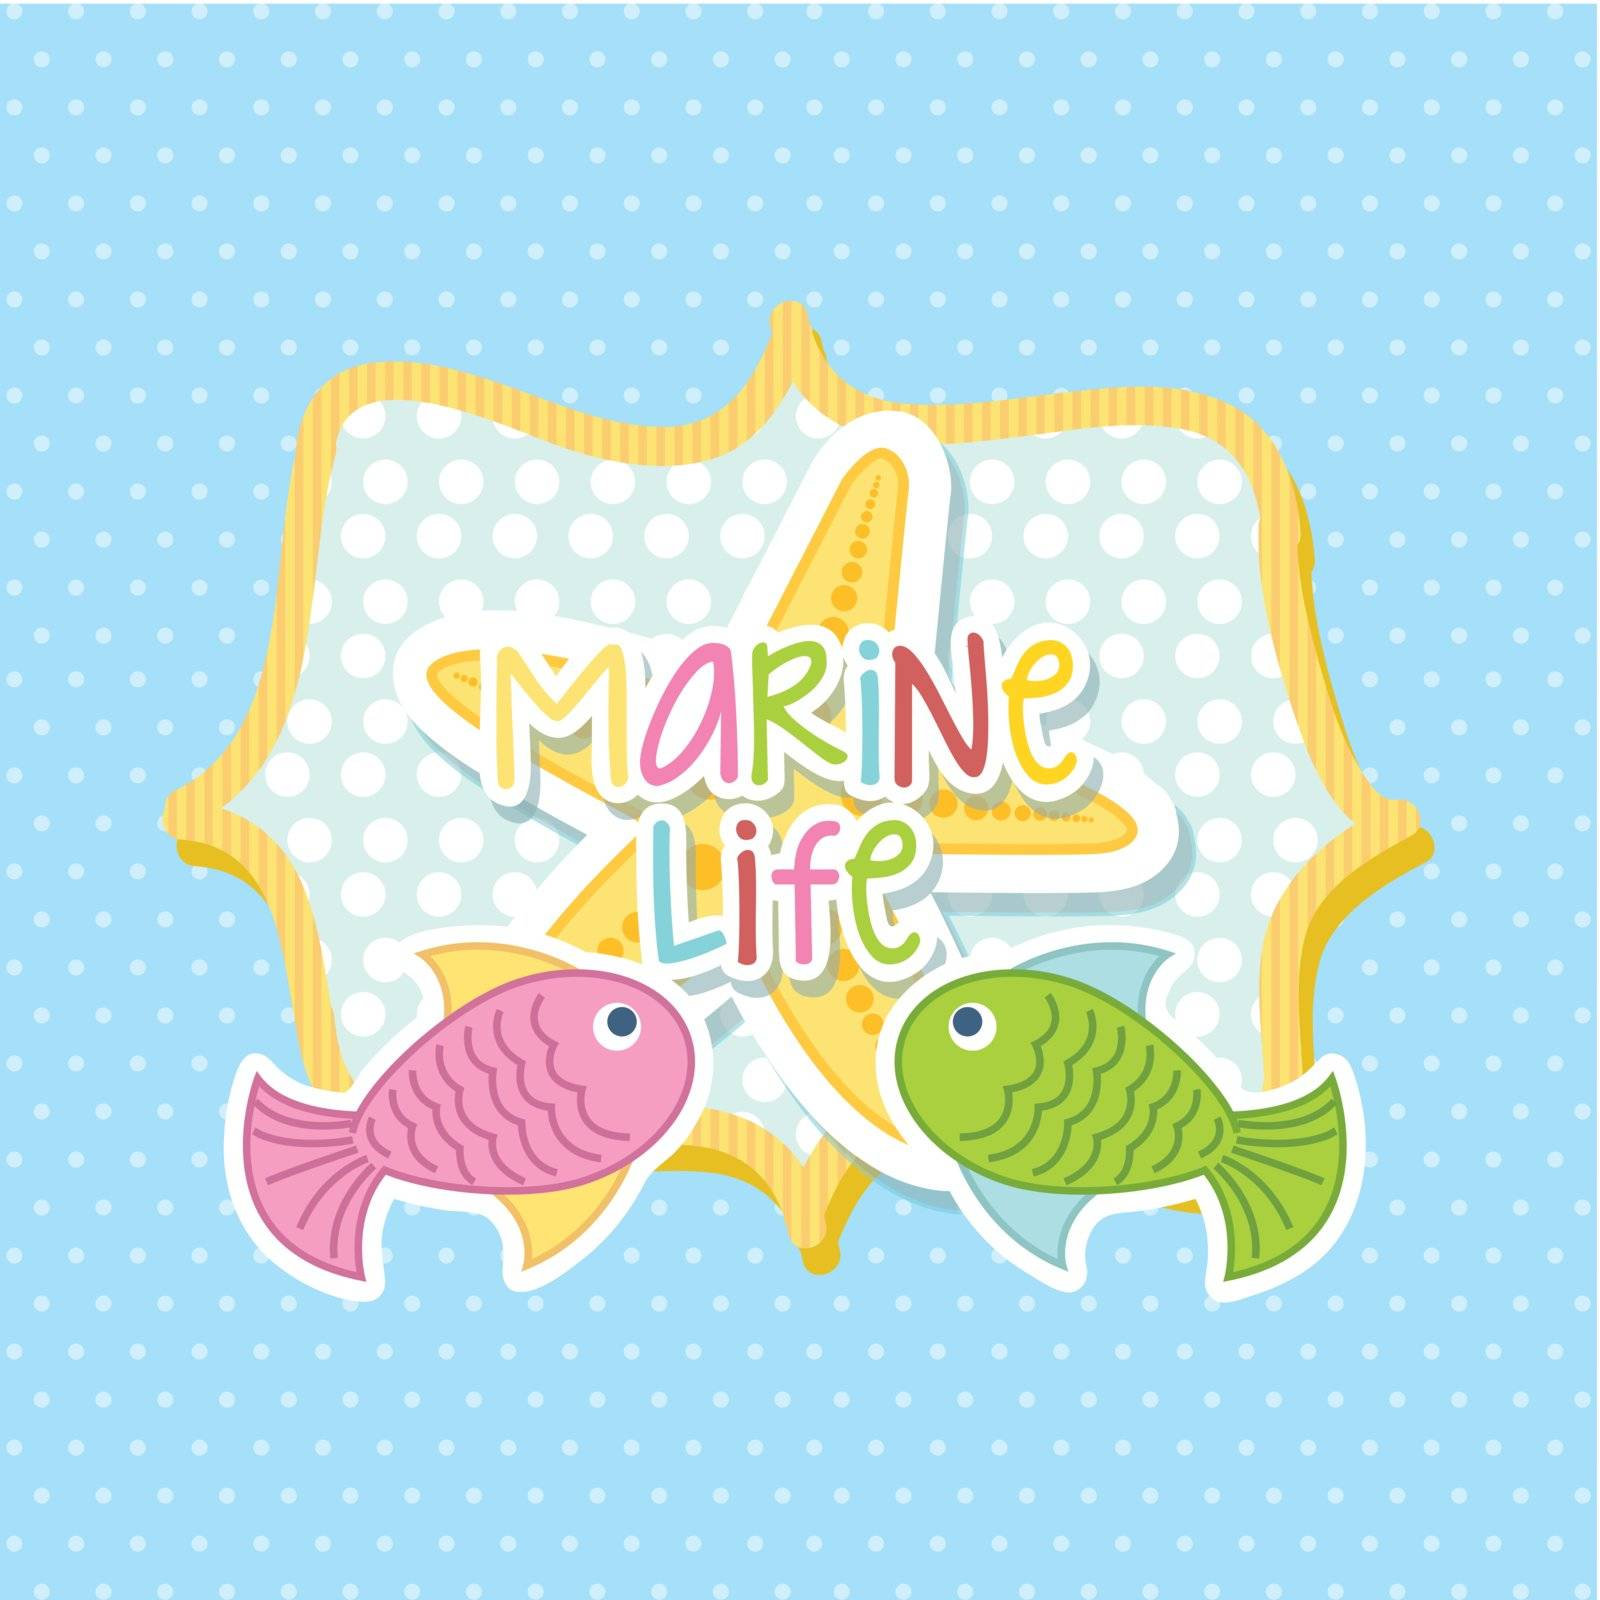 marine life with cute fishes over blue background. vector illustration